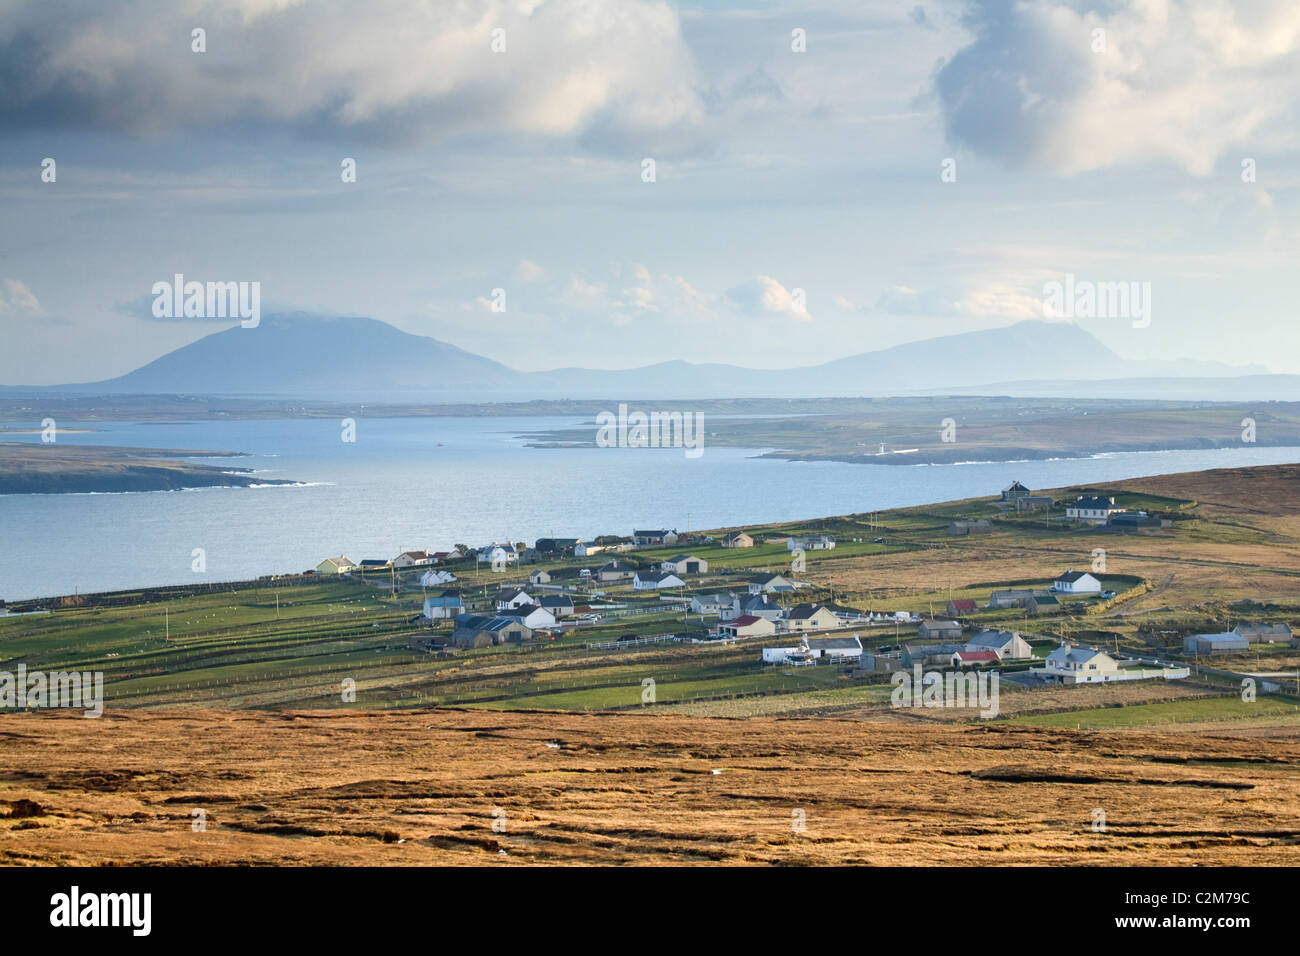 View across Carrowteige village and Broadhaven Bay, County Mayo, Ireland. - Stock Image